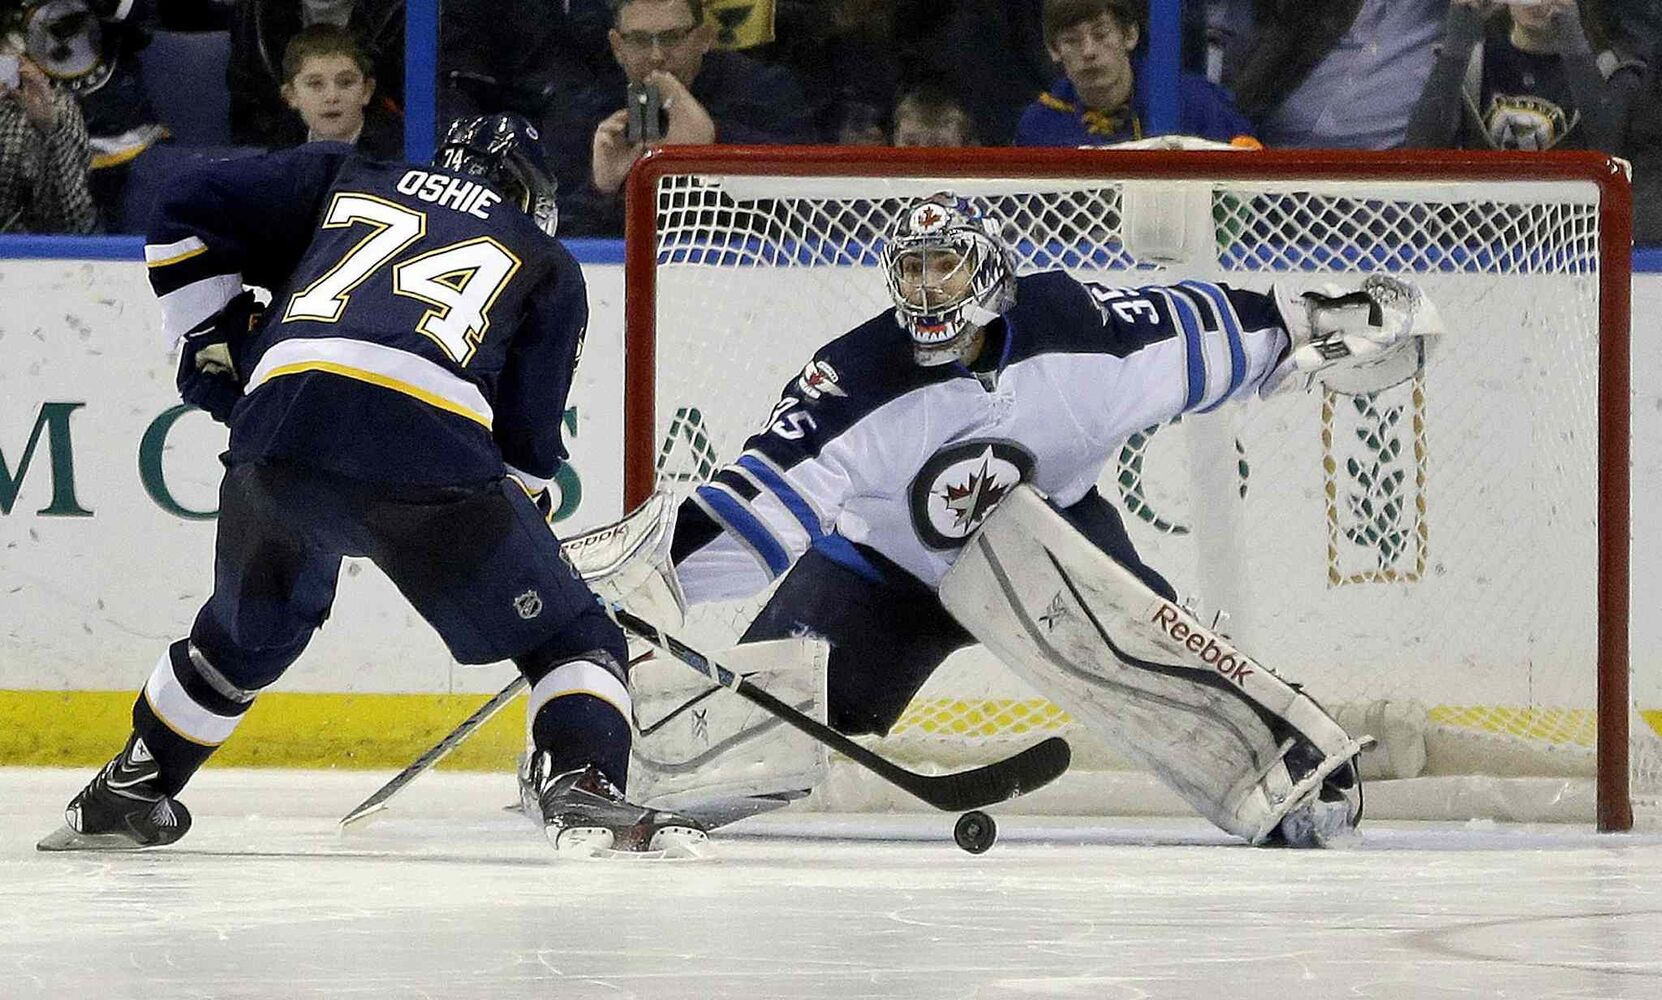 St. Louis Blues' T.J. Oshie, left, scores against Winnipeg Jets' goalie Al Montoya. The Blues won 4-3 in a shootout. (Jeff Roberson / The Associated Press)